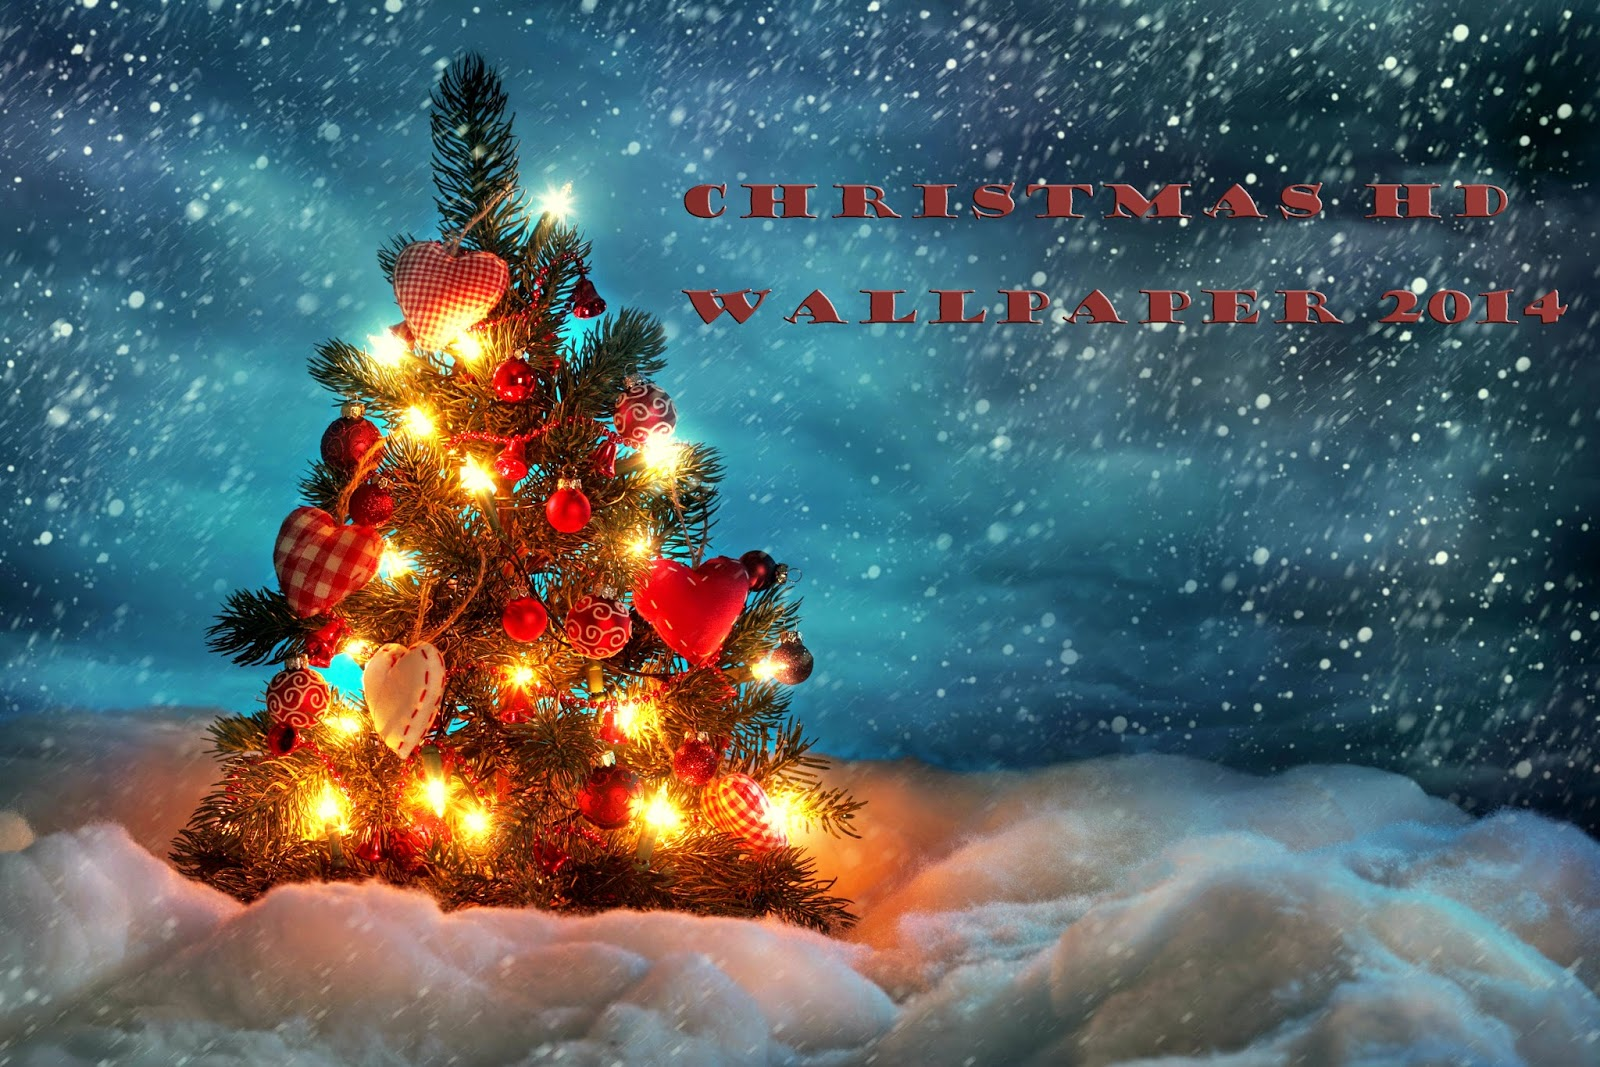 marry christmas hd wallpaper 2014 ~ world celebrity & reality show news